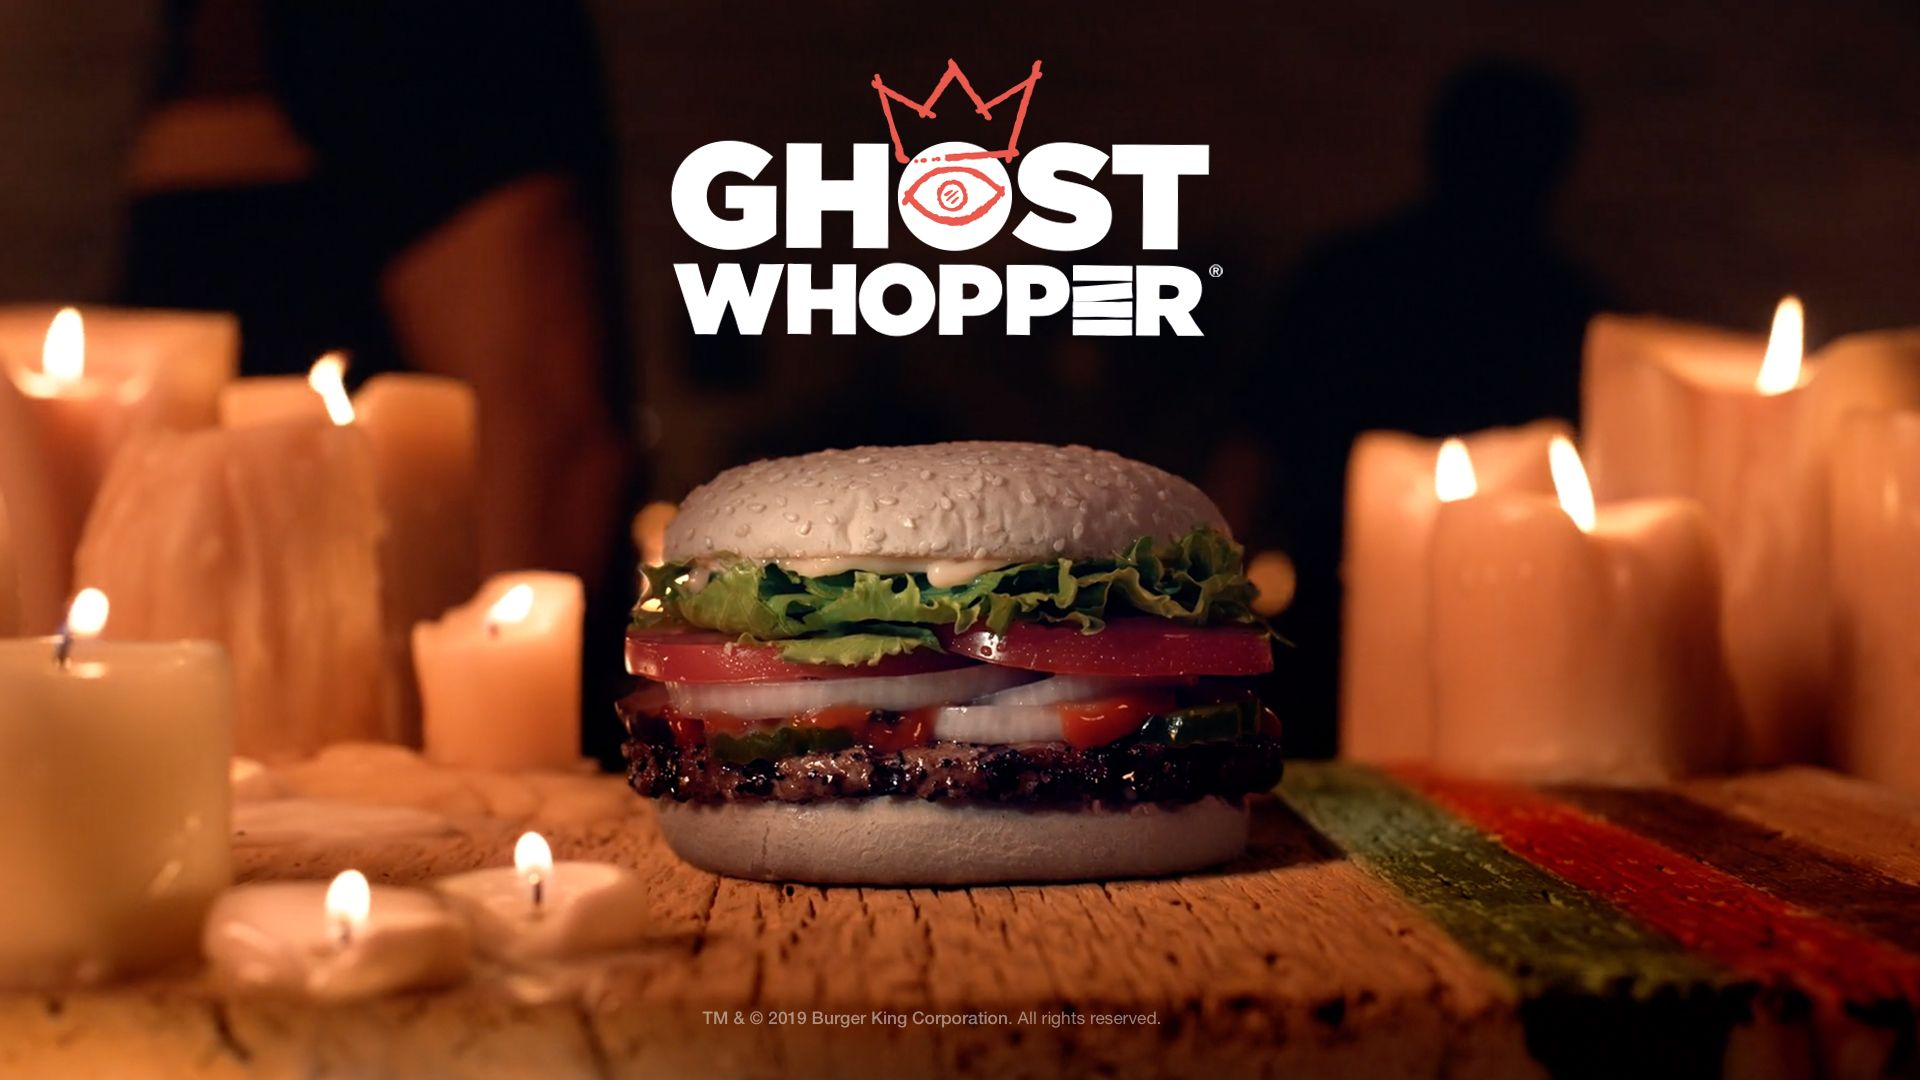 Burger King Ghost whopper